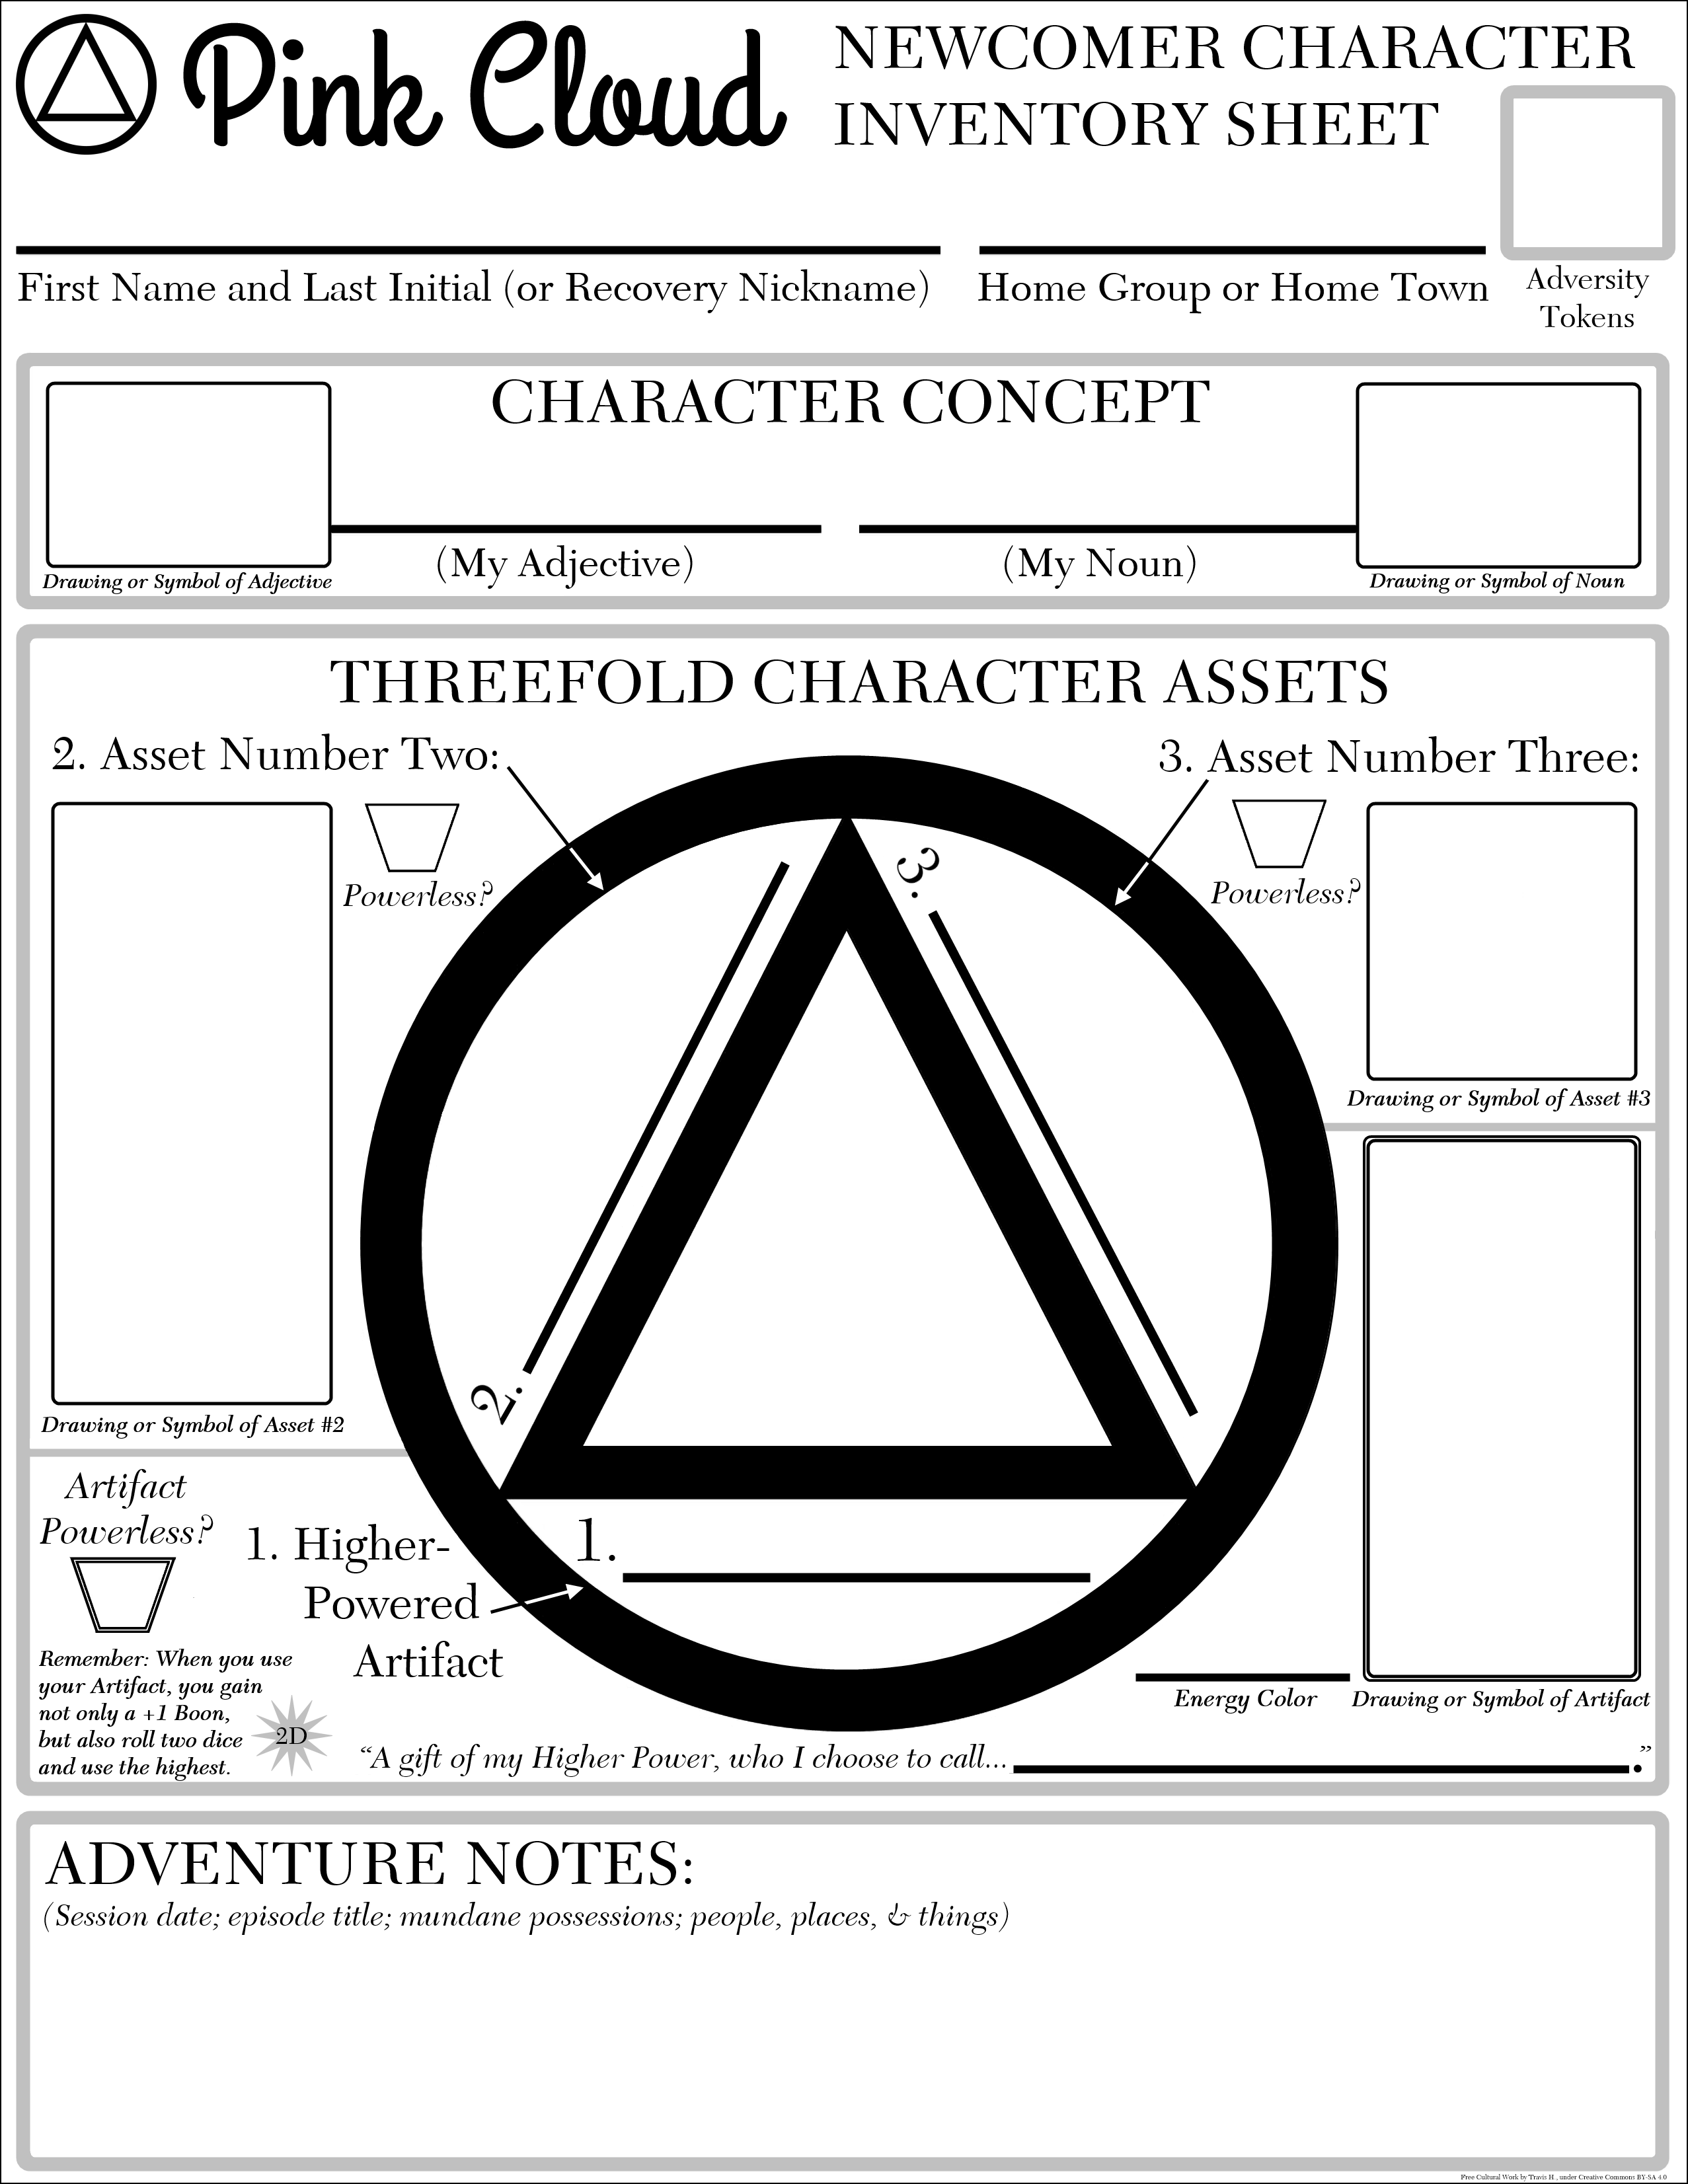 outline for KS - Pink Cloud Newcomer Character Inventory Sheet 4.2.png